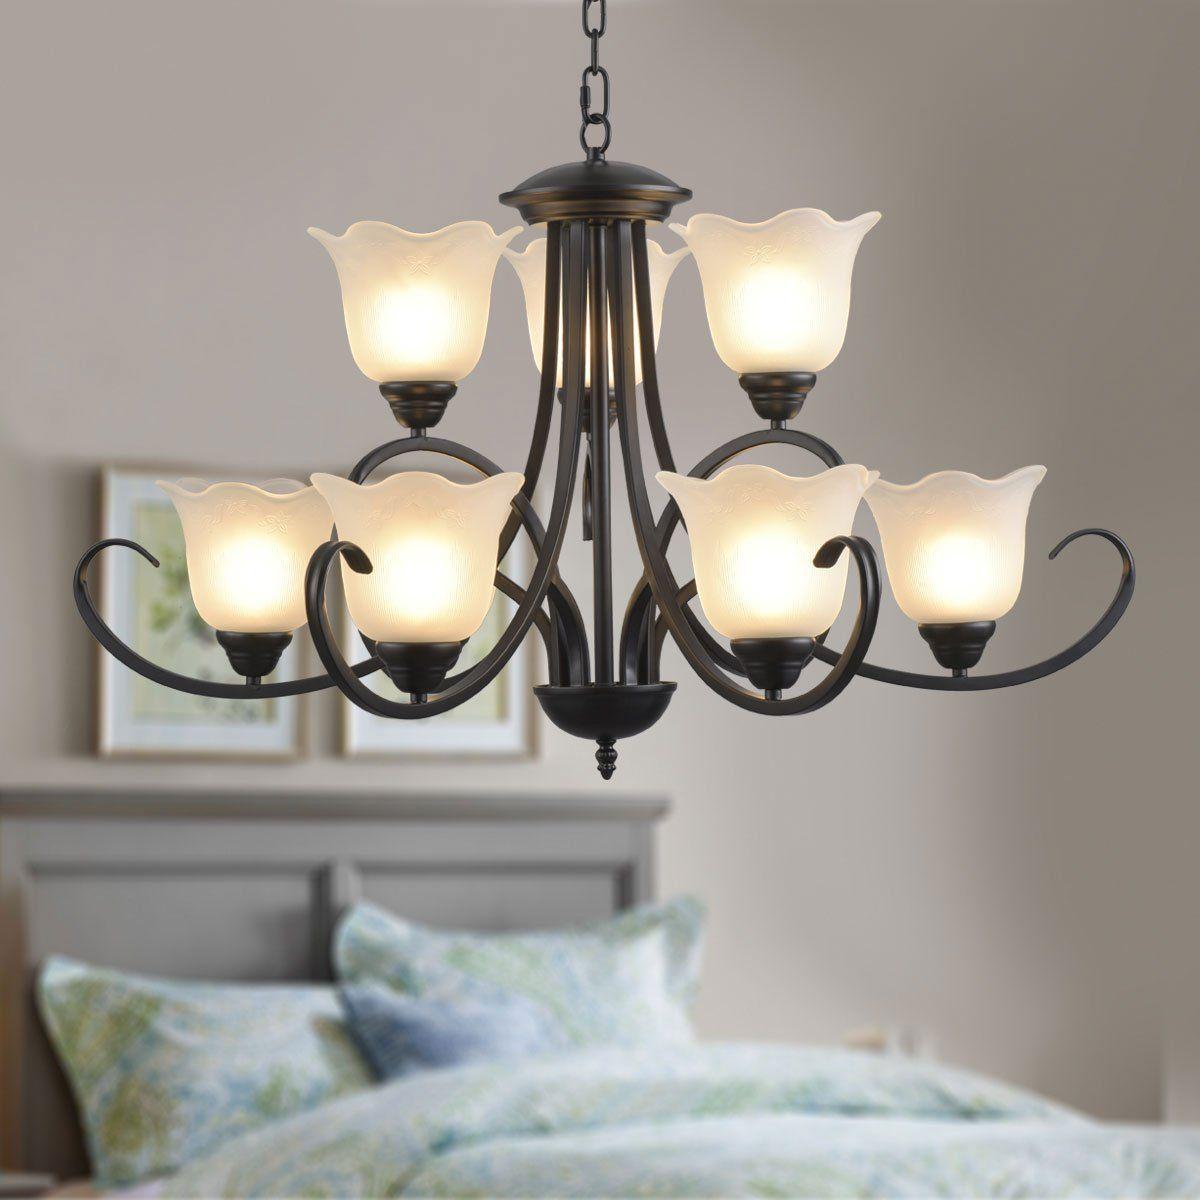 9 Light Black Wrought Iron Chandelier With Glass Shades E 8019 6